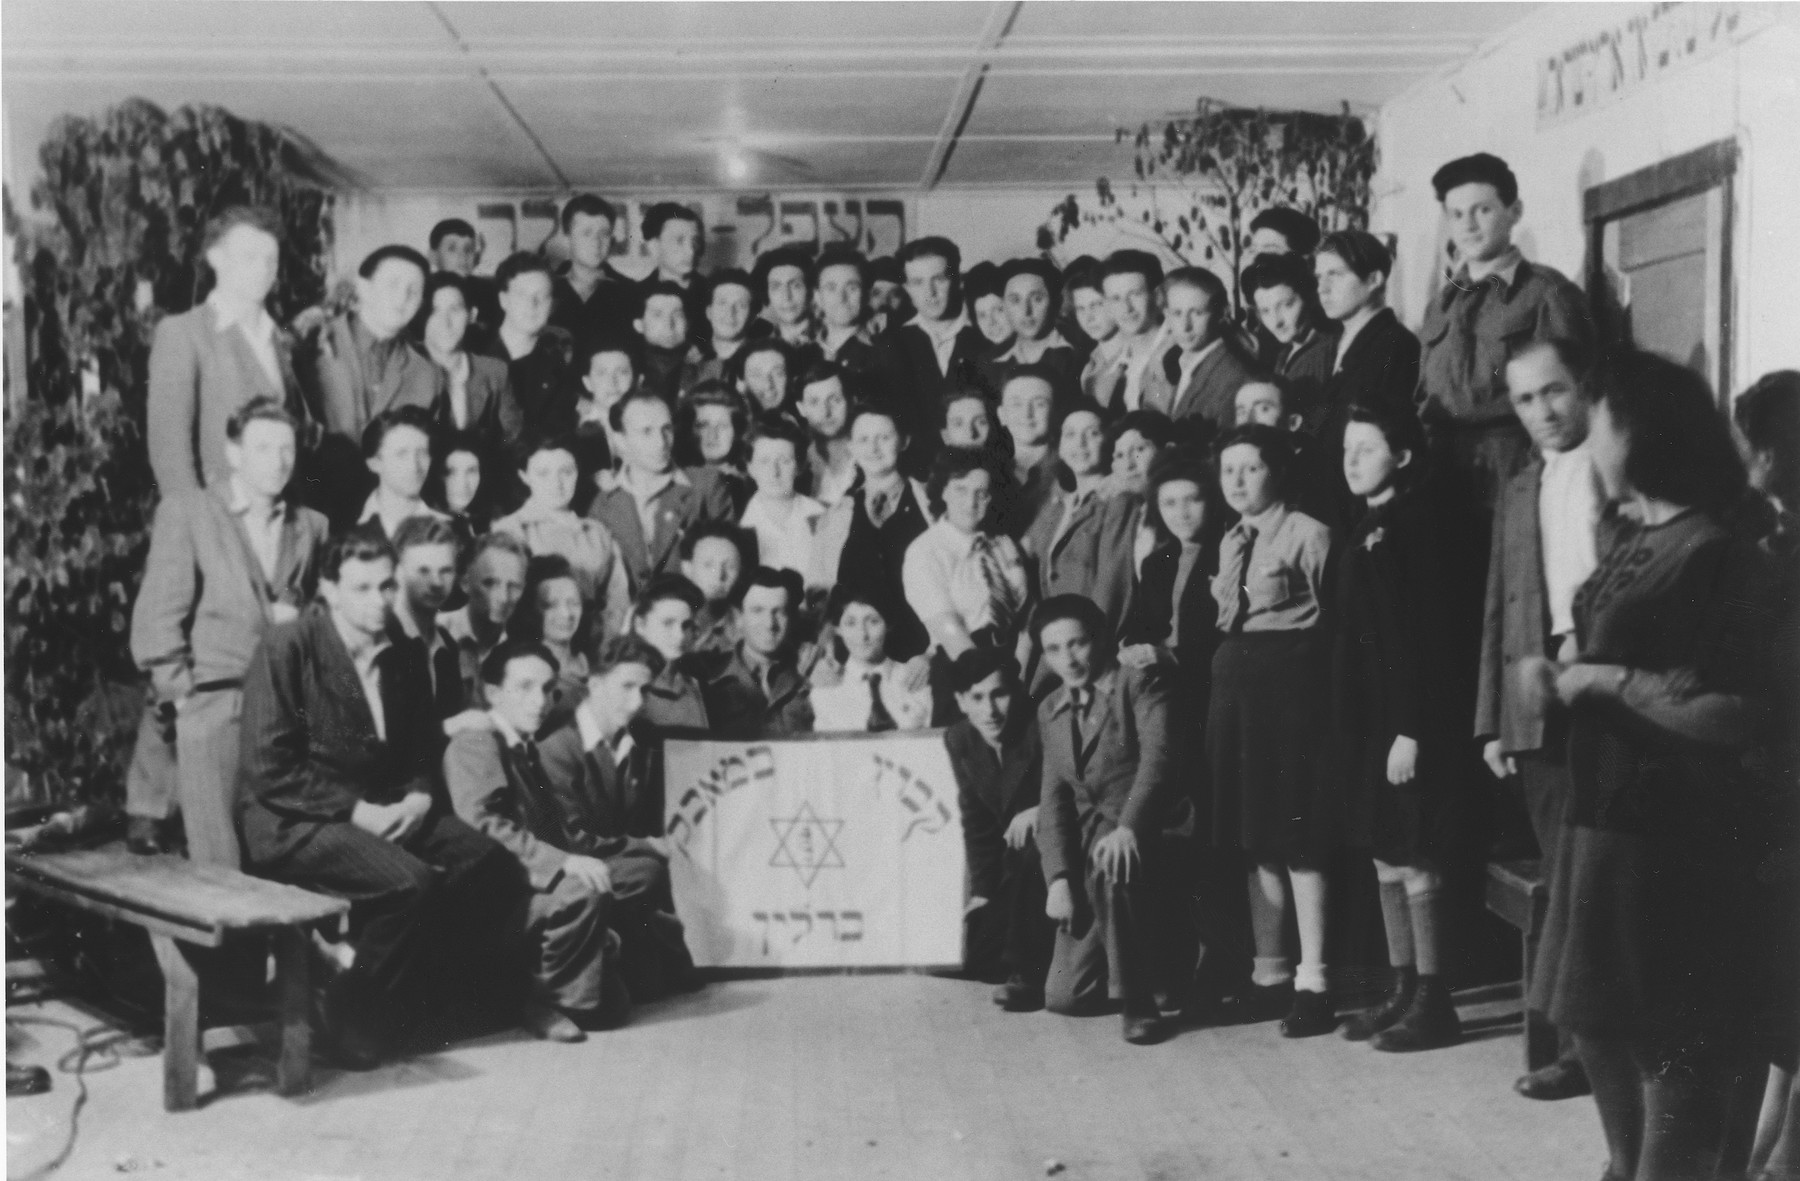 Group portrait of members of Kibbutz Be-Maavak [literally, the Kibbutz in struggle] in the Schlachtensee displaced persons camp.